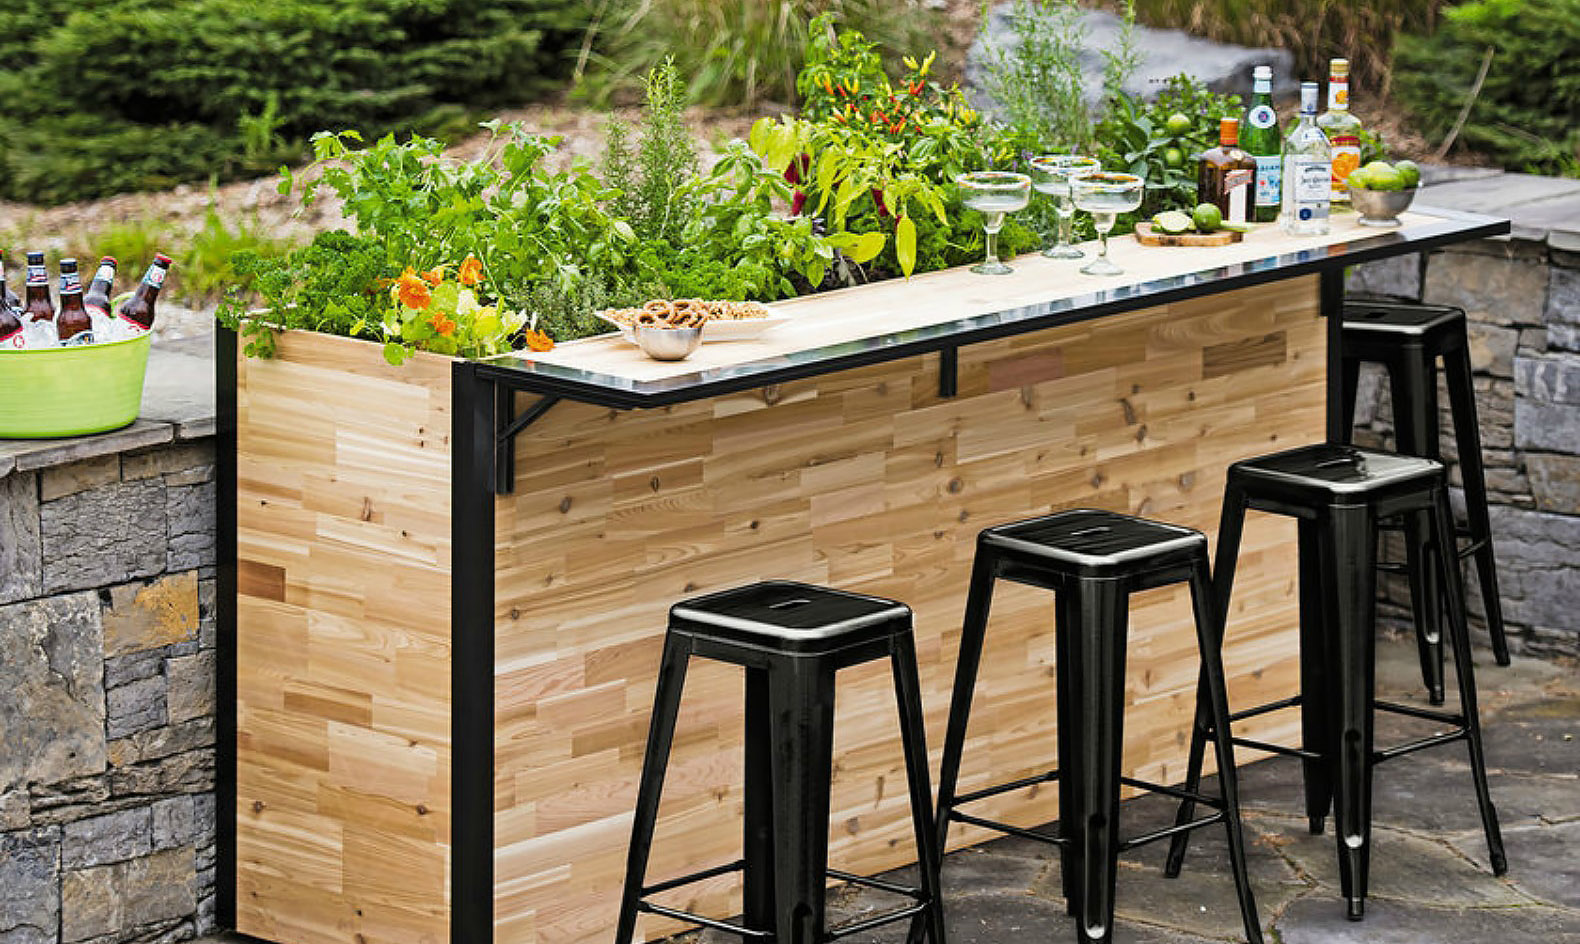 Plant A Bar: an outdoor bar made with reclaimed wood that ...